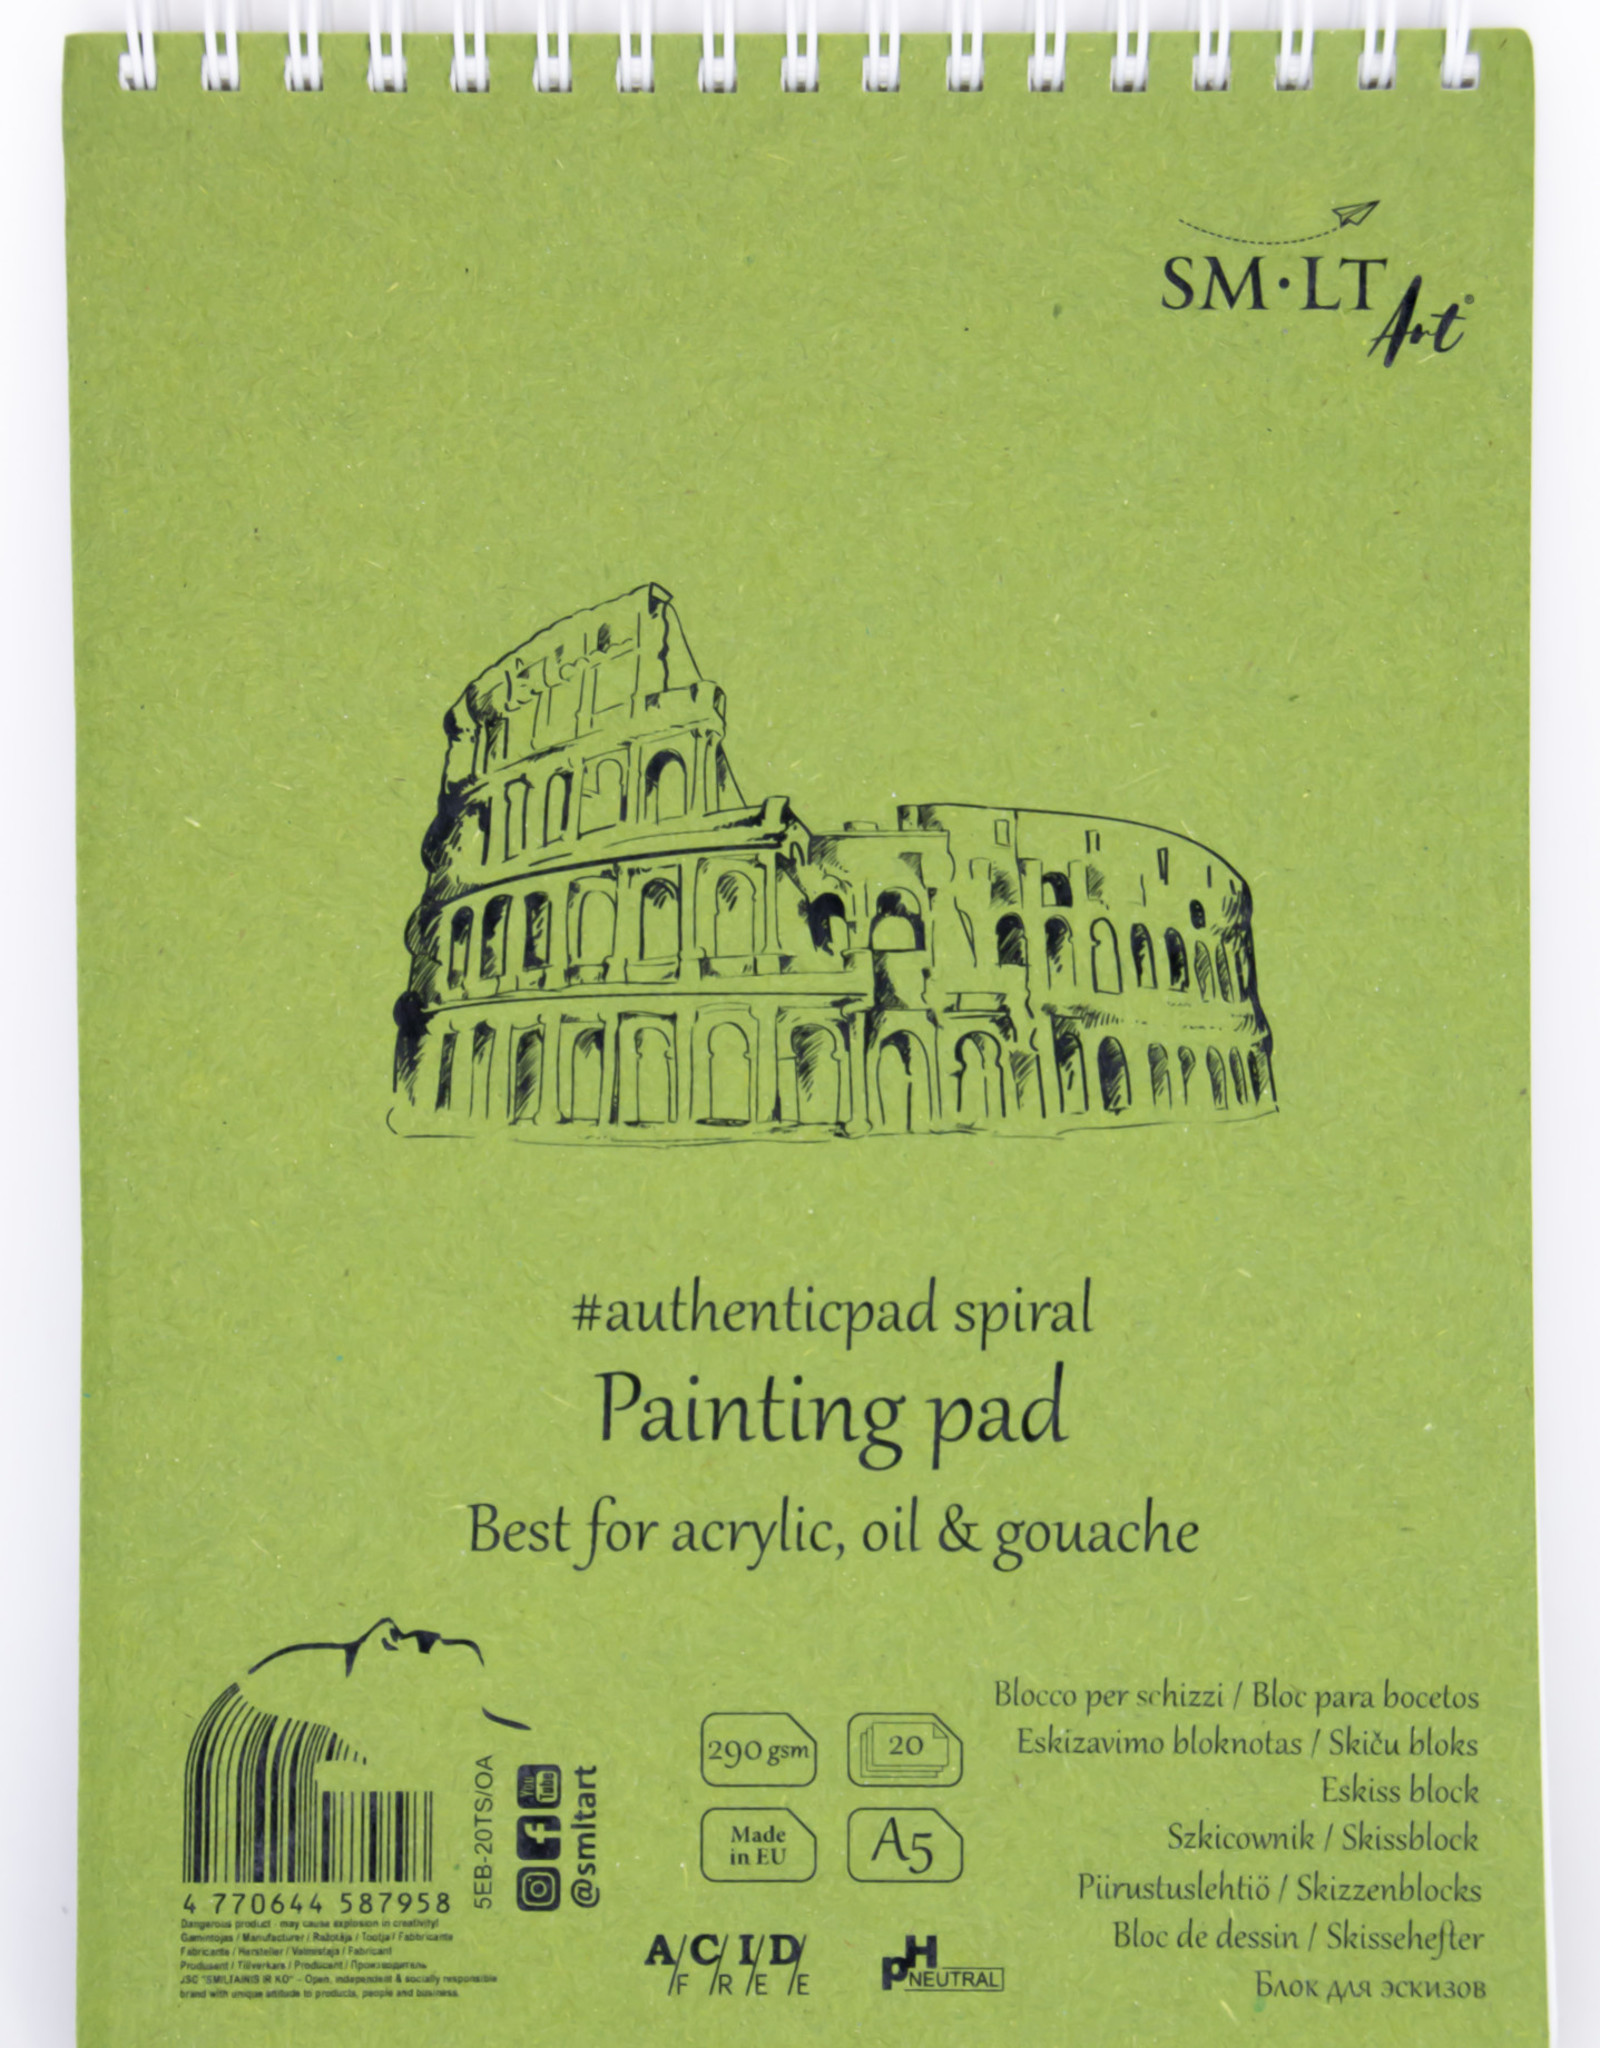 """SMLT Acrylic and Oil Painting Pad, White, 5.75"""" x 7.5"""" A5, 290gsm, 20 Sheets"""